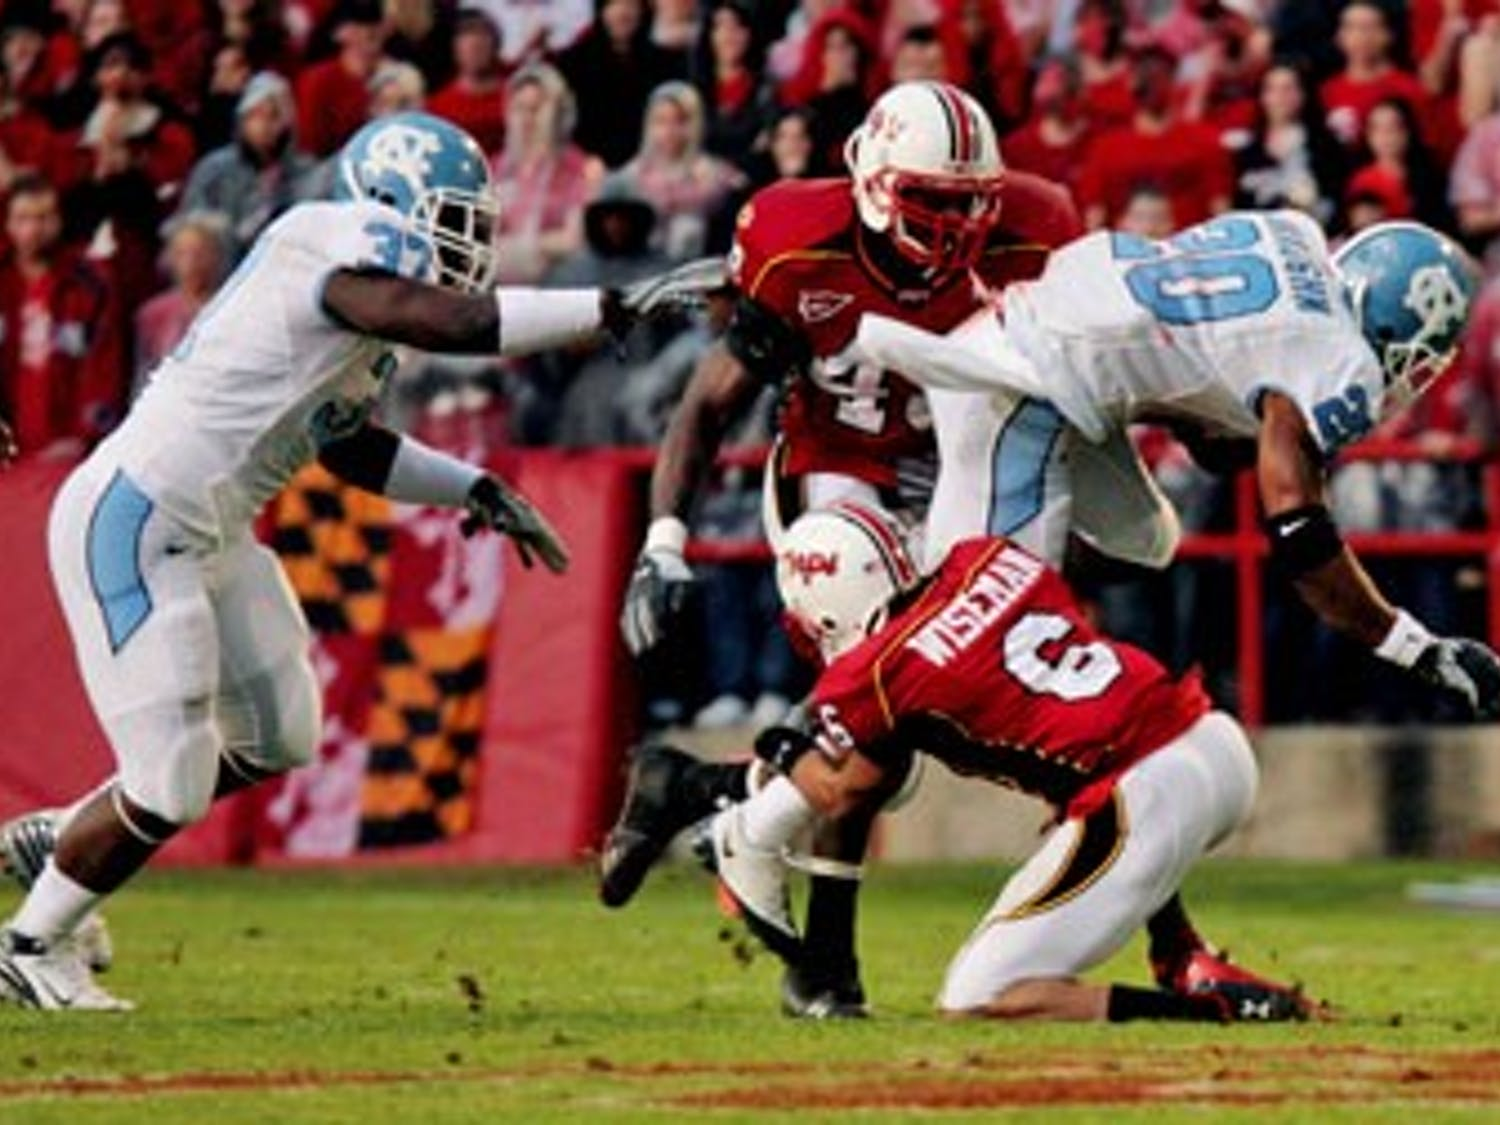 North Carolina rusher Shaun Draughn finished with only 46 yards on 13 carries and UNC couldn?t hold on to its lead Saturday falling 15-17. Maryland rallied back on a 73-yard drive in the fourth quarter. ?Last drives we haven?t been great on this year? linebacker Mark Paschal said.